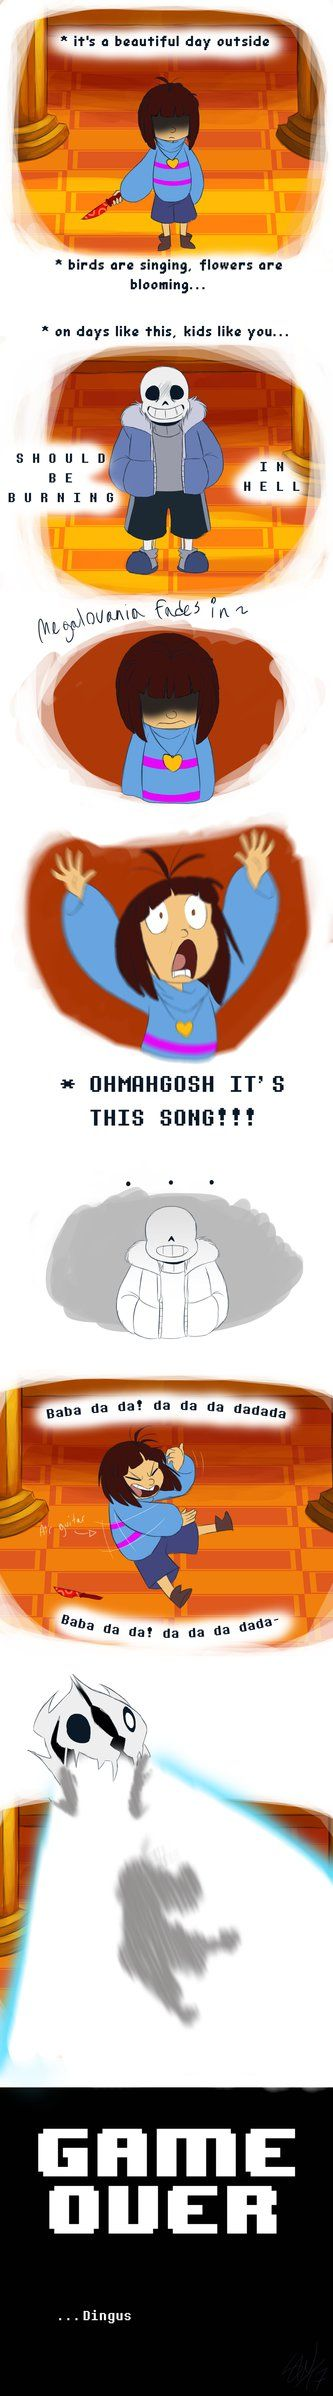 also known as TC's first encounter with the Sans fight!....I literally got distracted by the song that I got obliterated by Sans in the first couple of seconds a lot of people have probably made co...